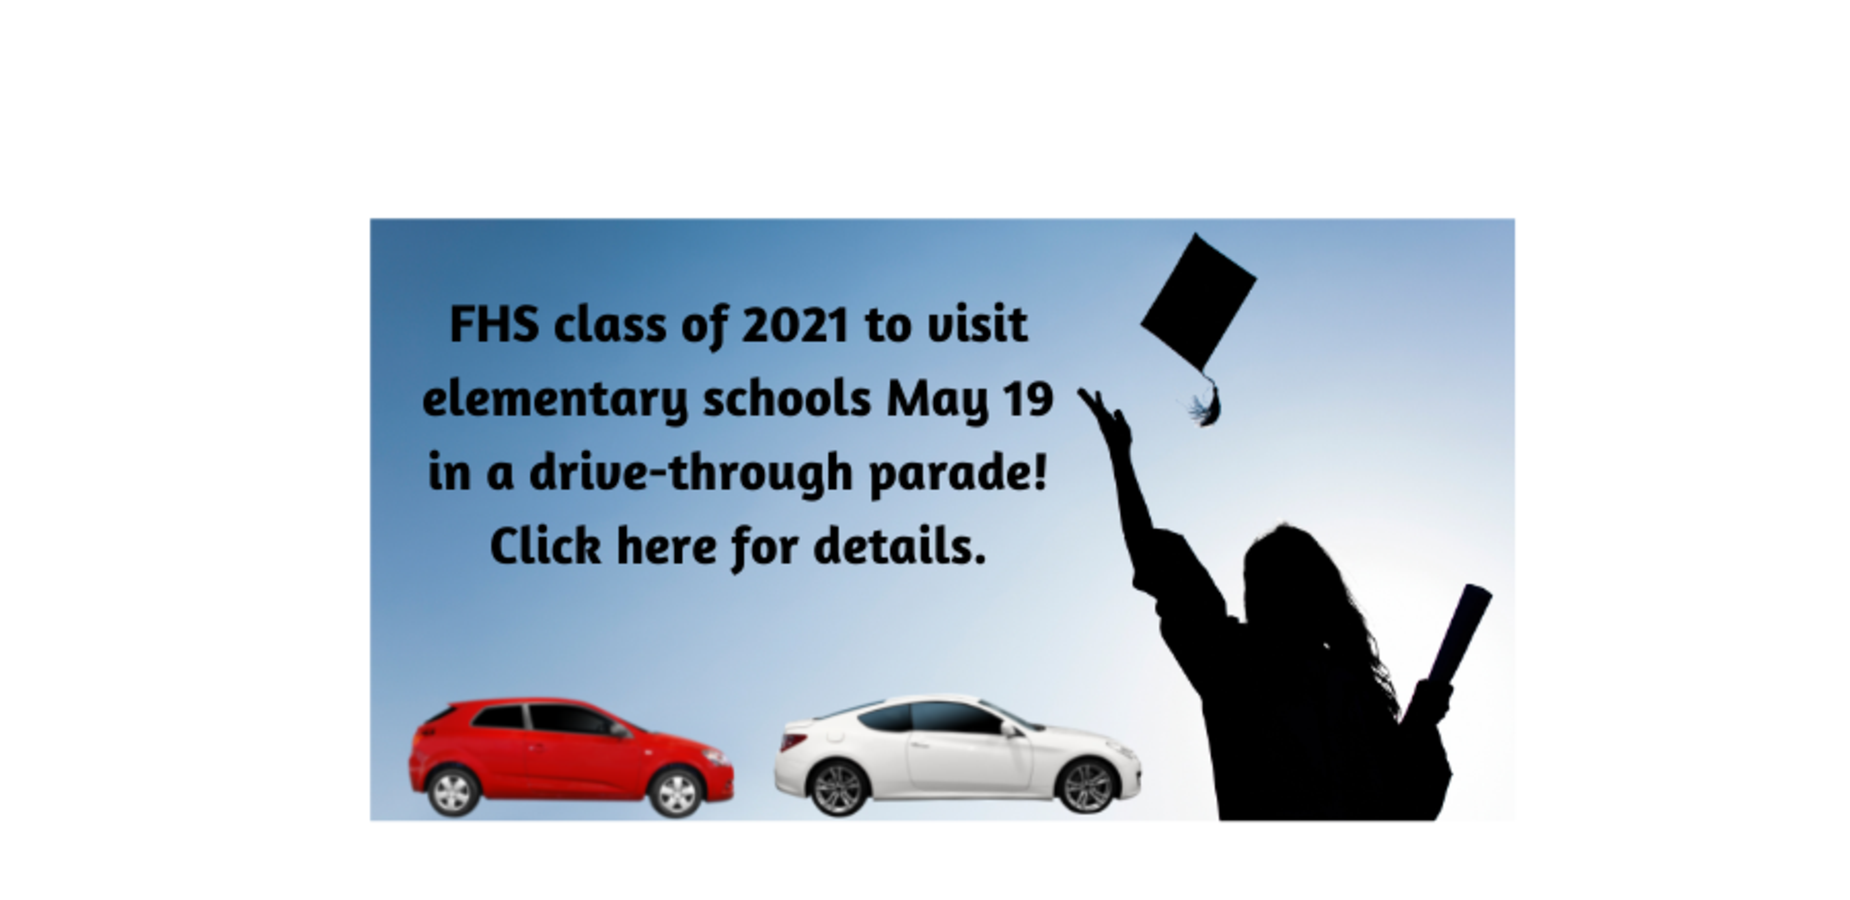 FHS class of 20921 to visit elementary schools May 19 in a drive-through parade! Click here for details